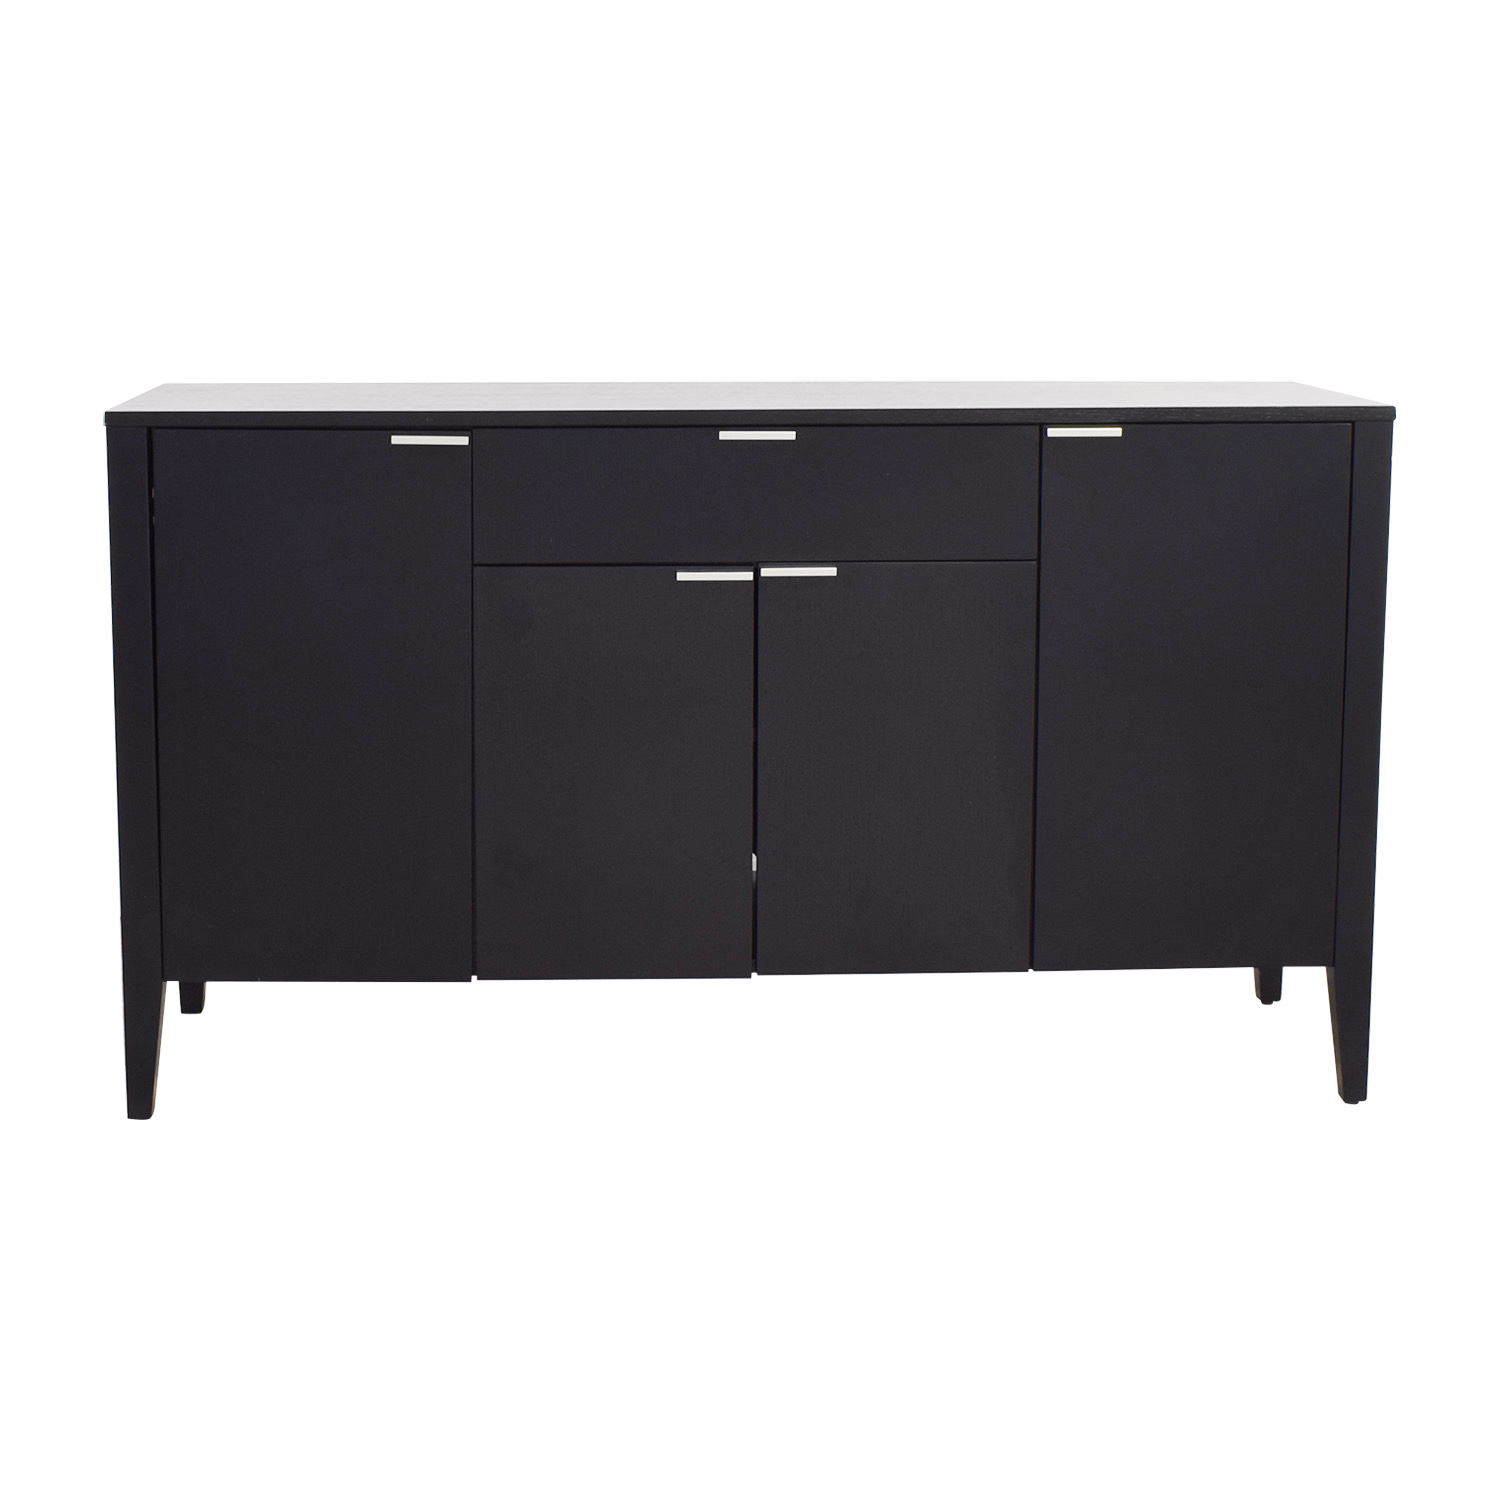 Buy Crate U0026 Barrel Crate U0026 Barrel Media Storage Cabinet Online